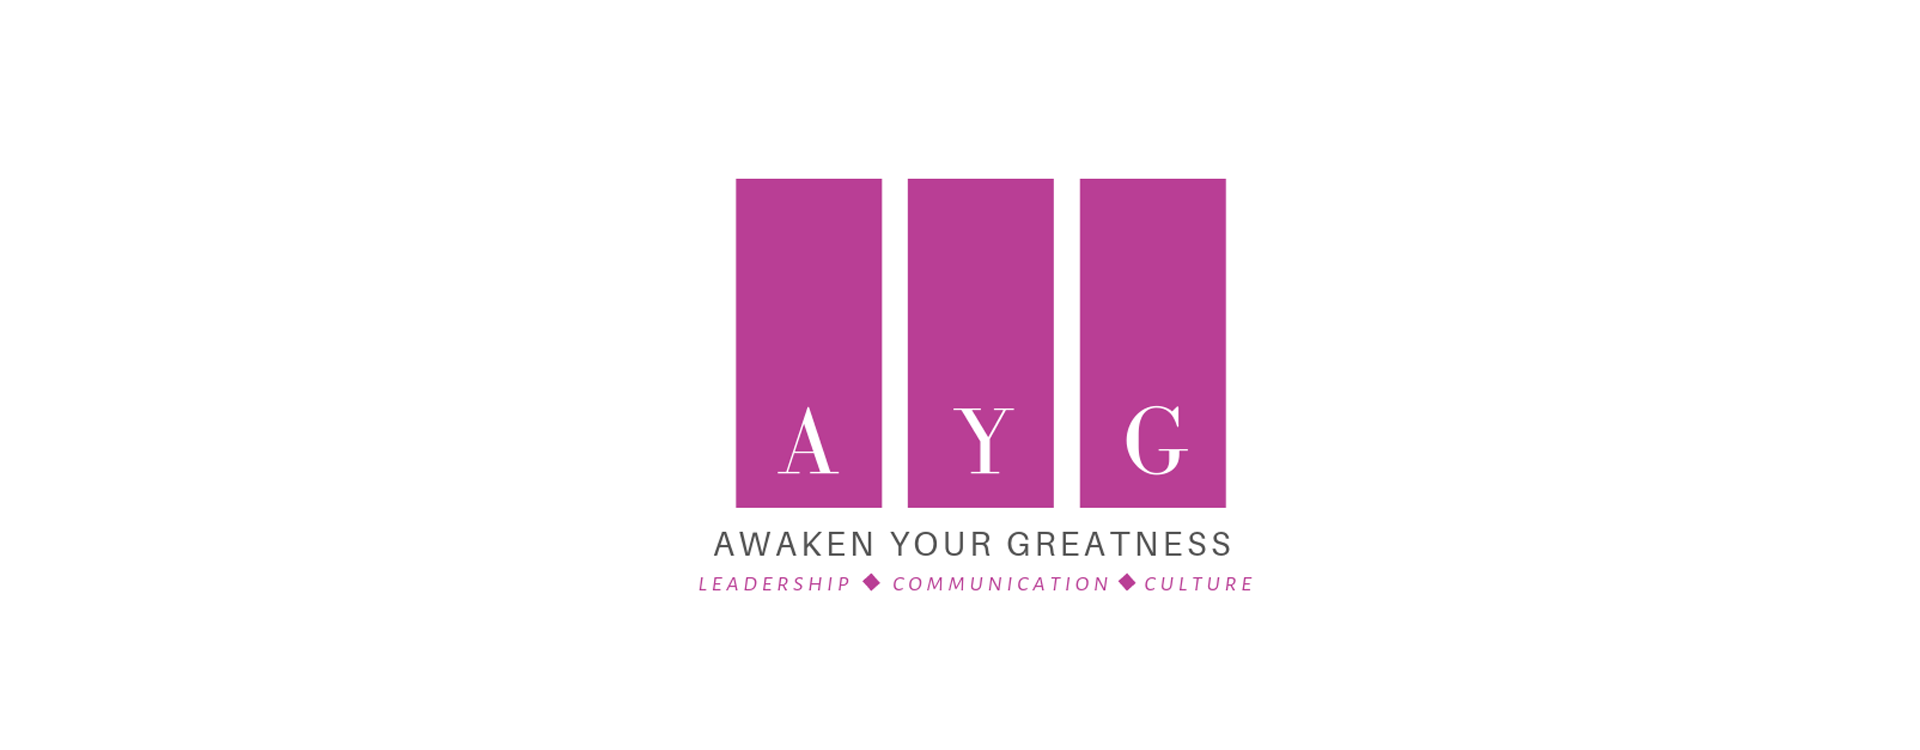 Awaken Your Greatness